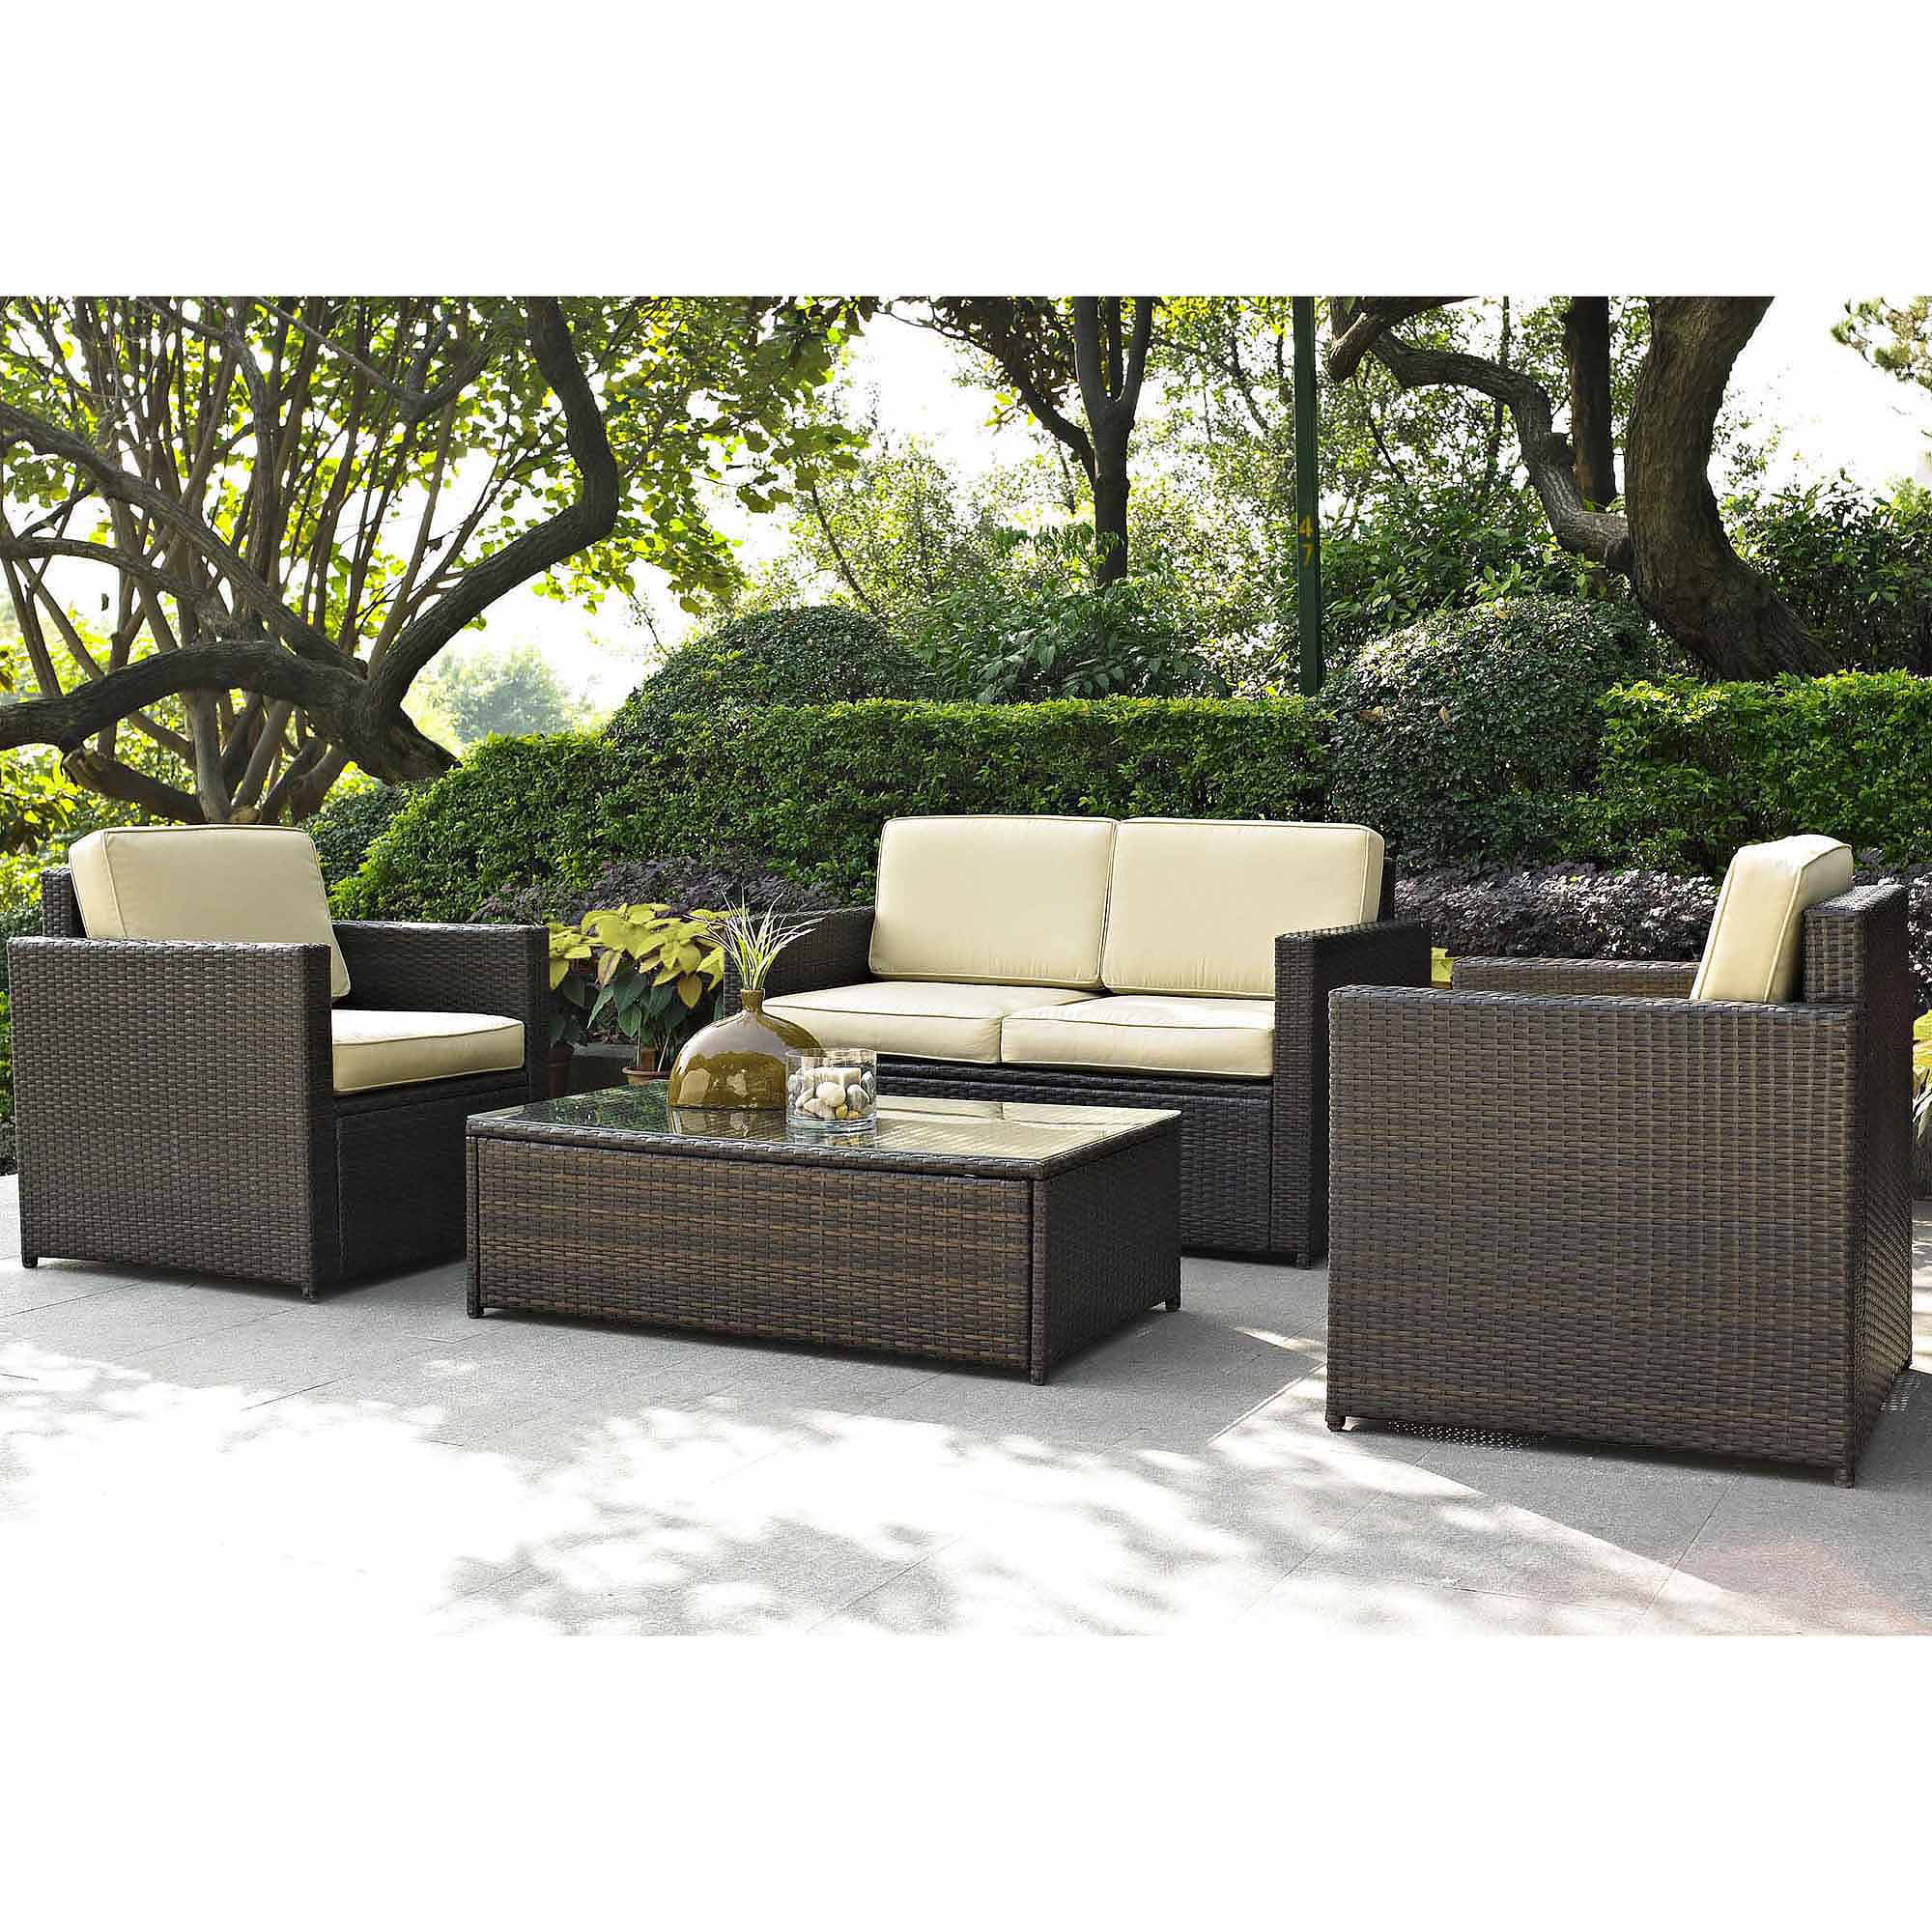 Best Choice Products 5pc Rattan Wicker Sofa Set Instructions Best Choice Products 4 Piece Wicker Patio Furniture Set W Tempered Glass 3 Sofas Table Cushioned Seats Black